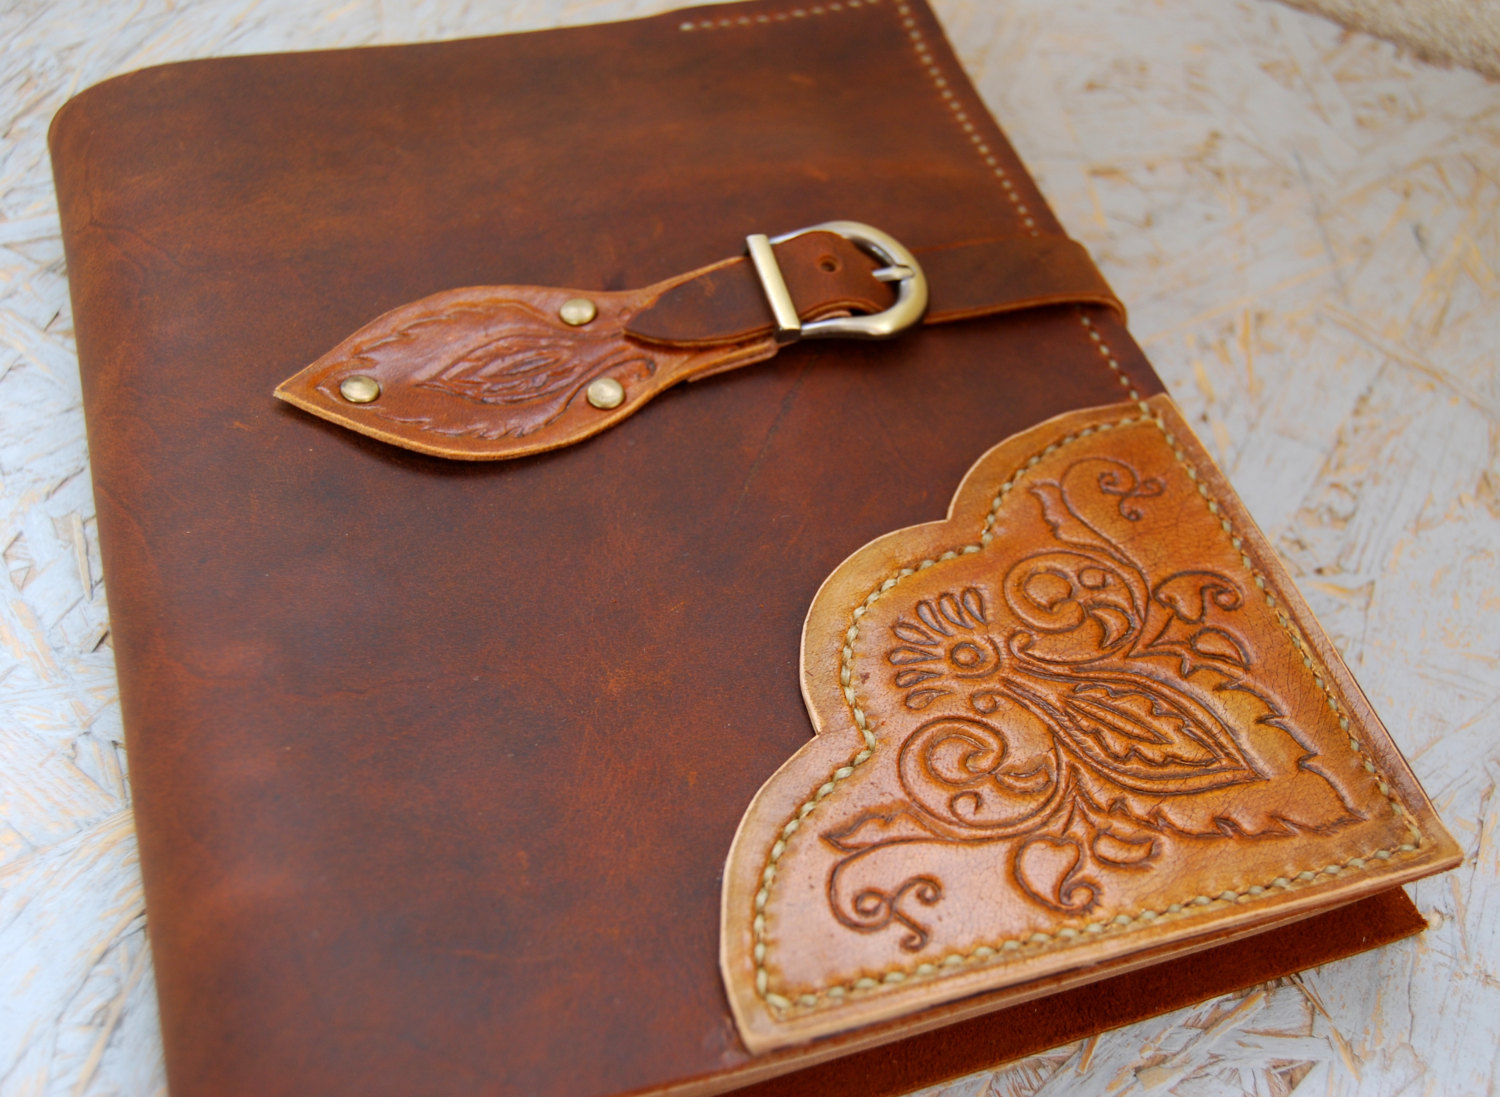 Leather Wedding Anniversary Gifts For Her: 5 Traditional Paper Anniversary Gift Ideas For Her